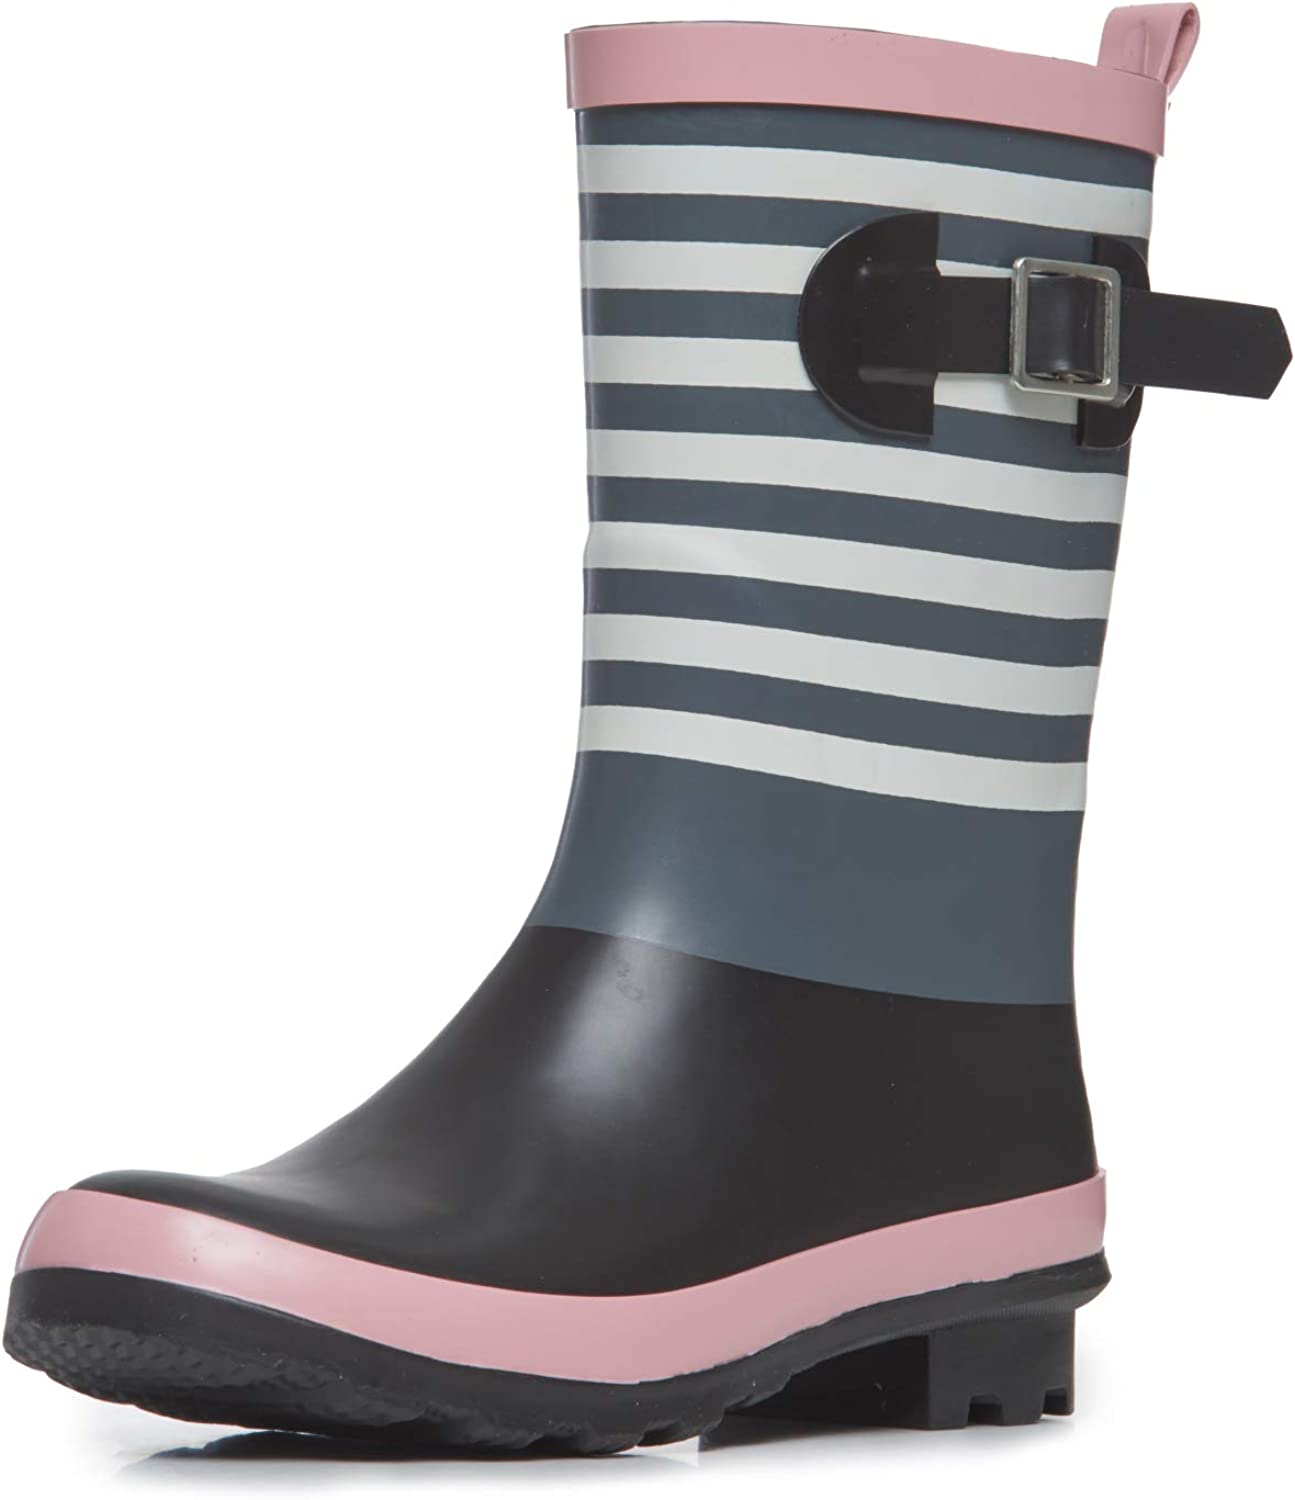 Laura Ashley Ladies High Cut Mid Calf Buckle Rubber Rain Boots, Lightweight Waterproof Booties for Women, Pink, Black and Blue Gray Stripes, 1